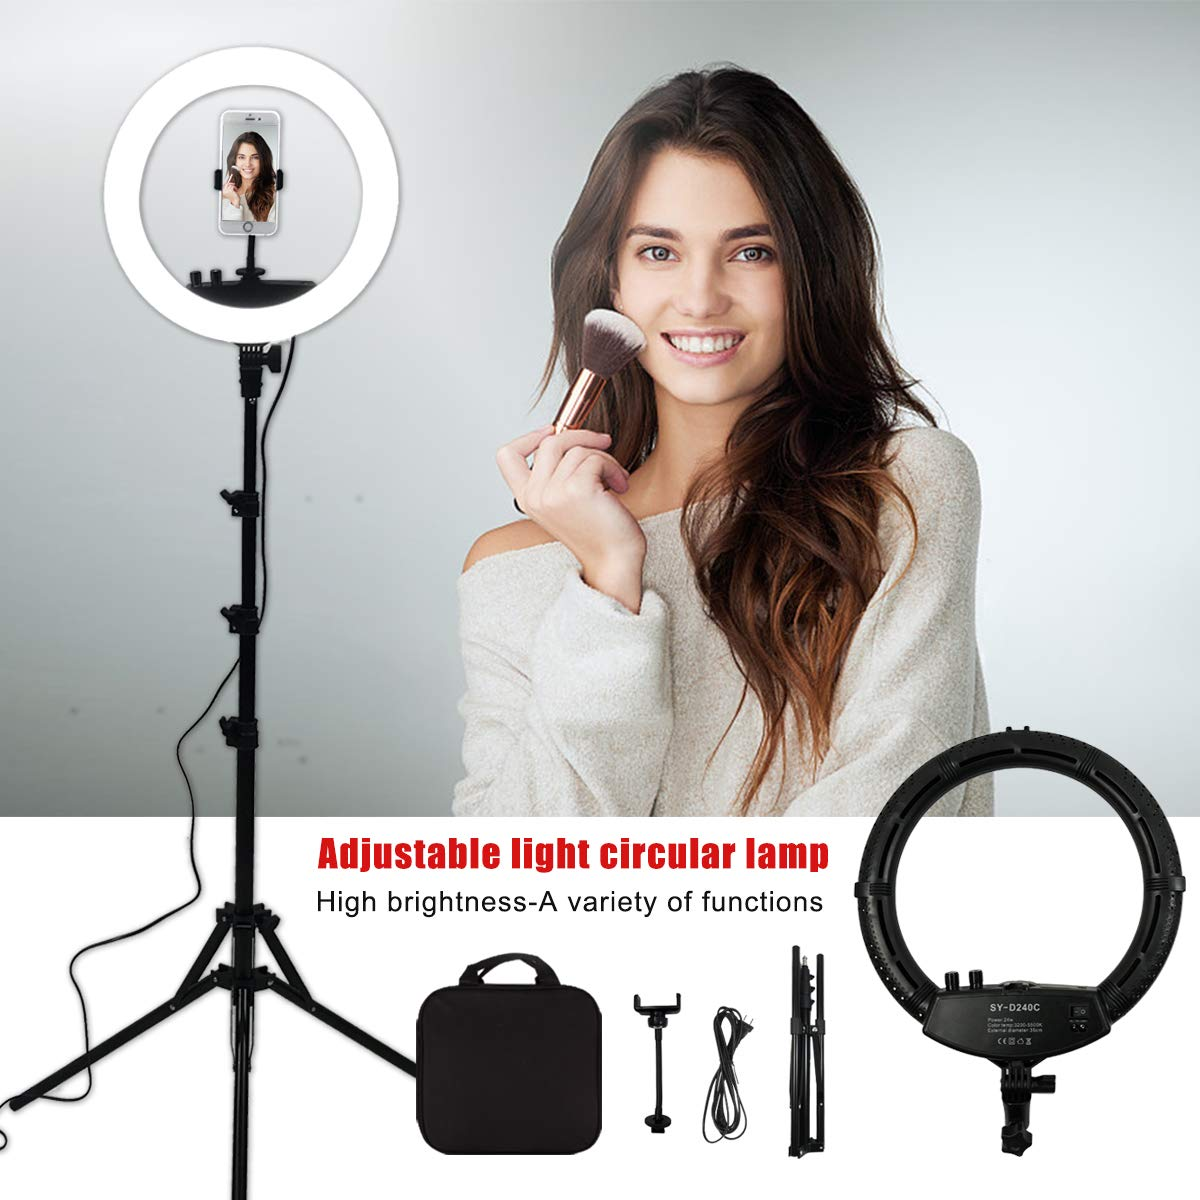 YBLMYWLW 12 inch 240 Led Ring Light Dimmable 3200K-5500K with Stand Professional Makeup Lights Video Shooting Fill Light Nail Art Eyebrow Studio Selfie